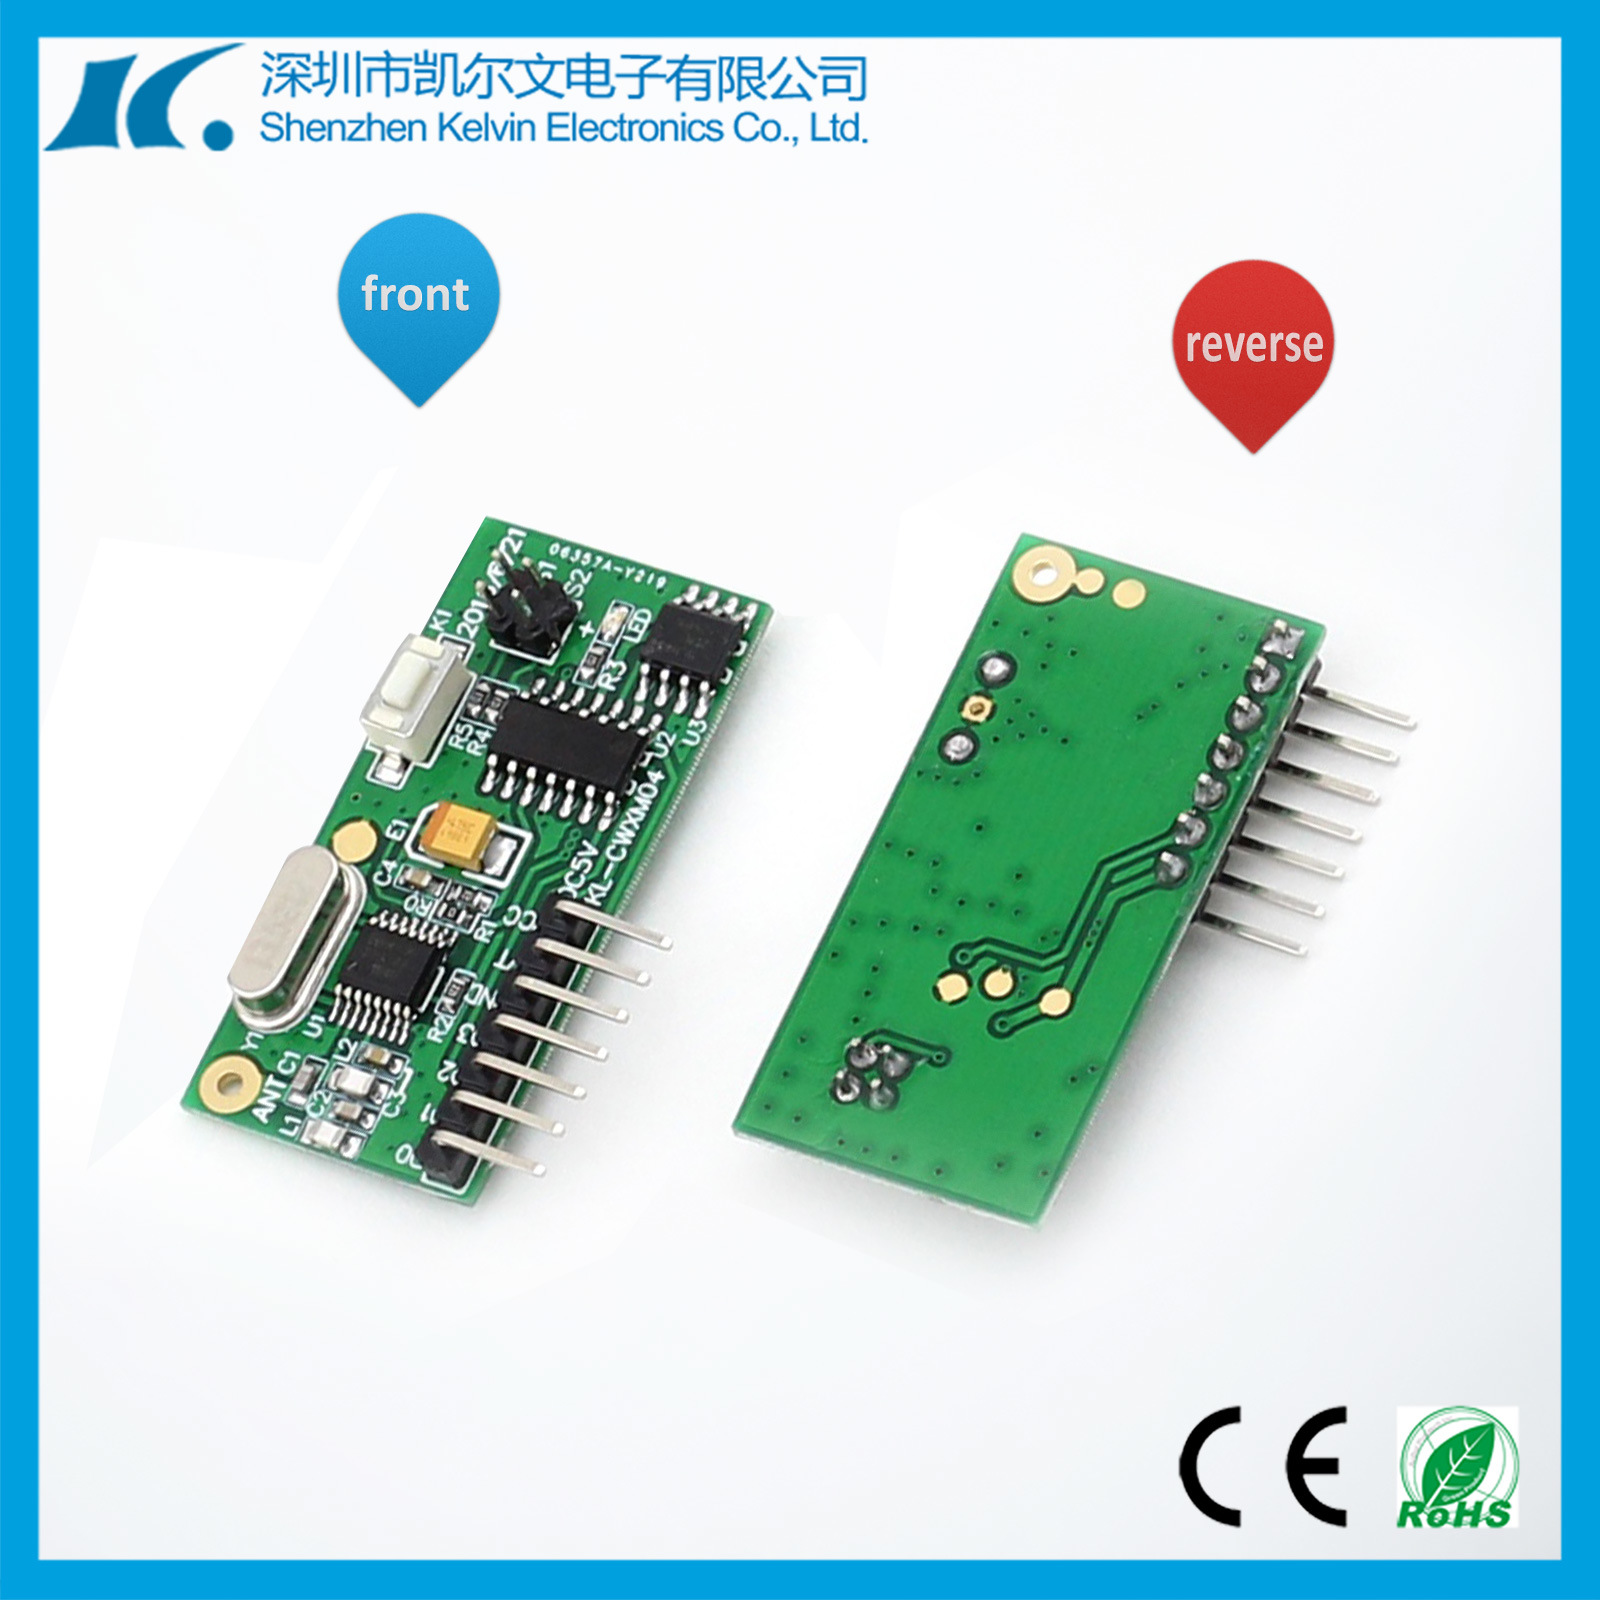 Super Heterodyne High Sensitivity RF Receiver Module Kl-Cwxm04